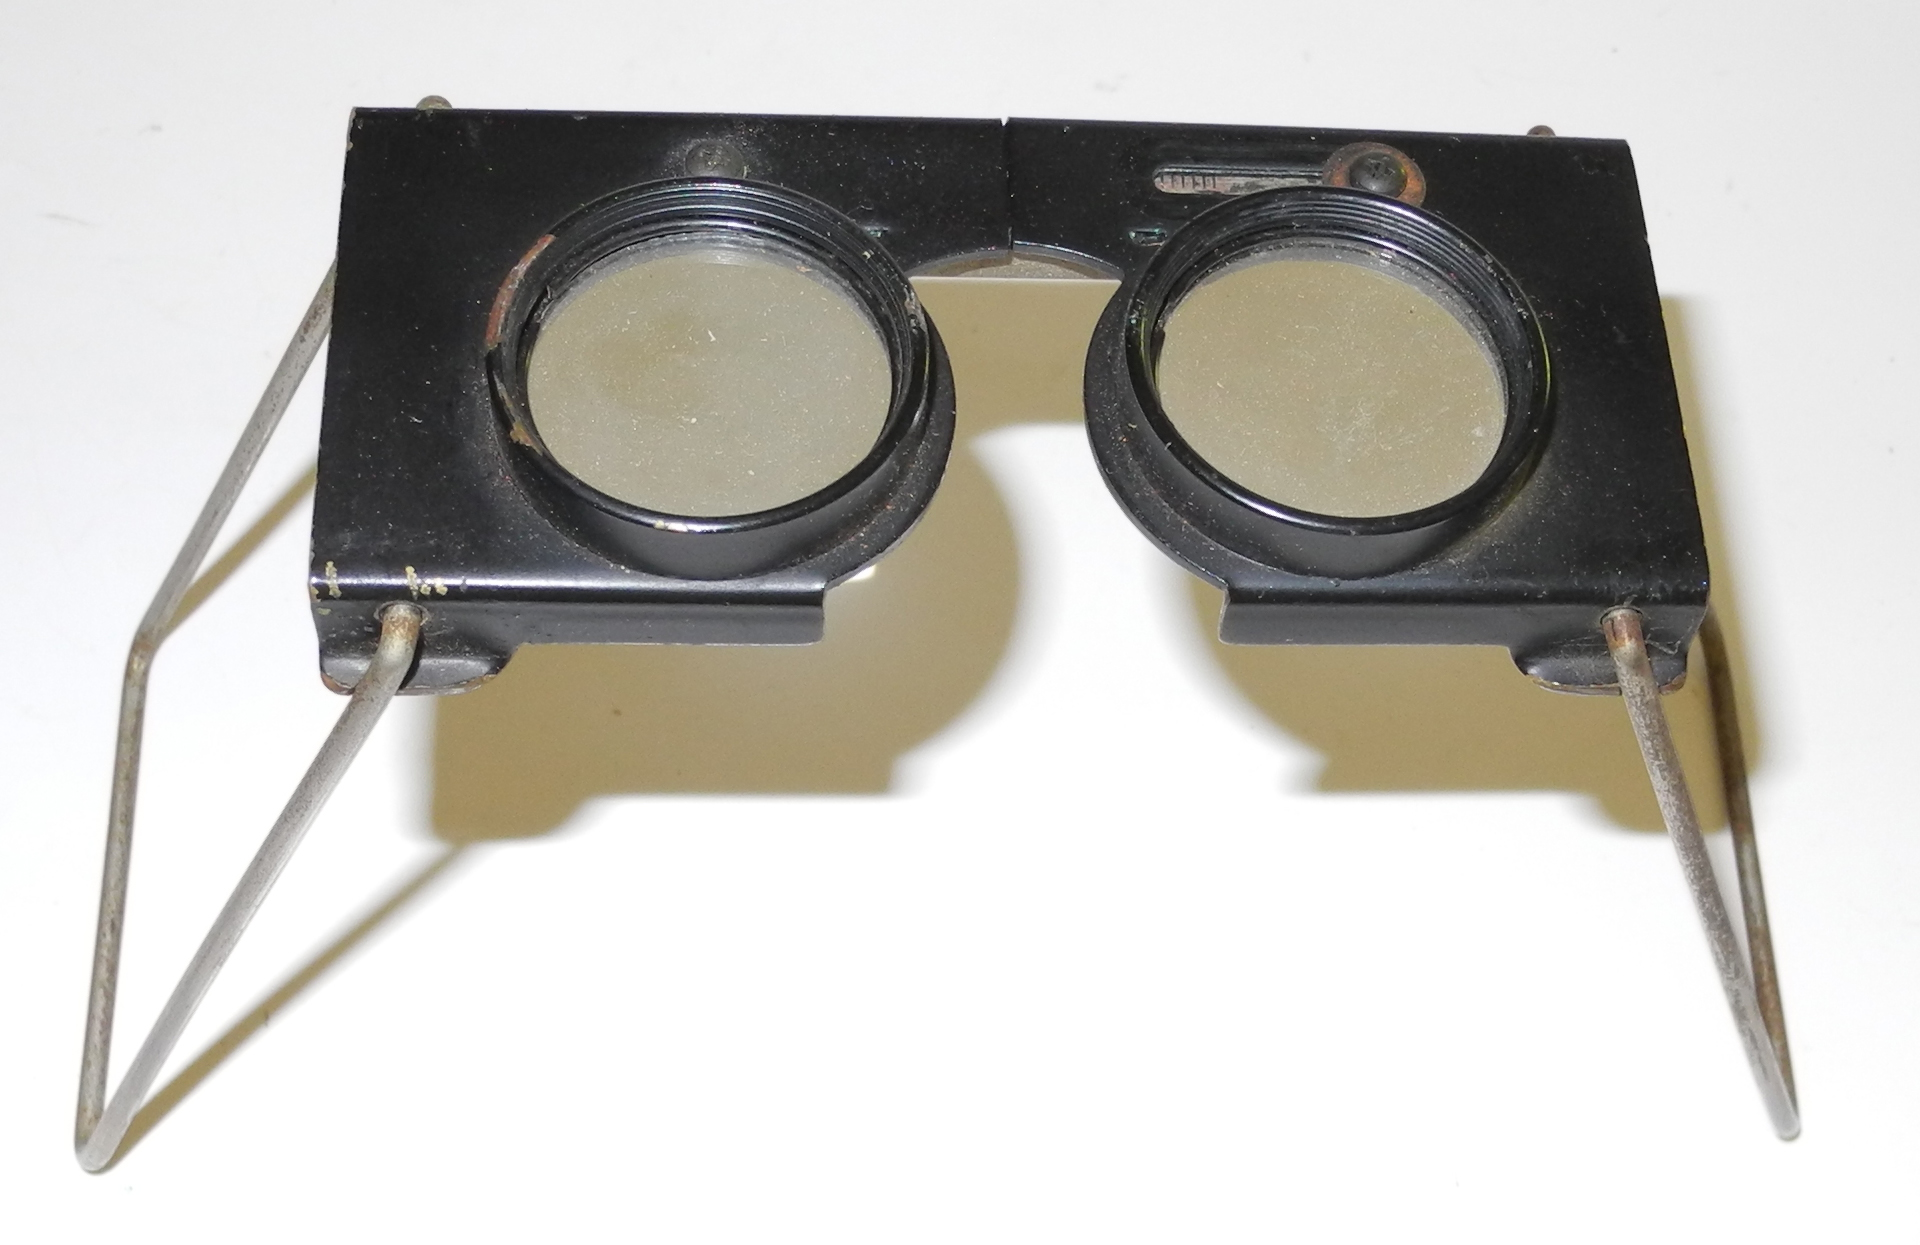 AAF stereo map / photo magnifier